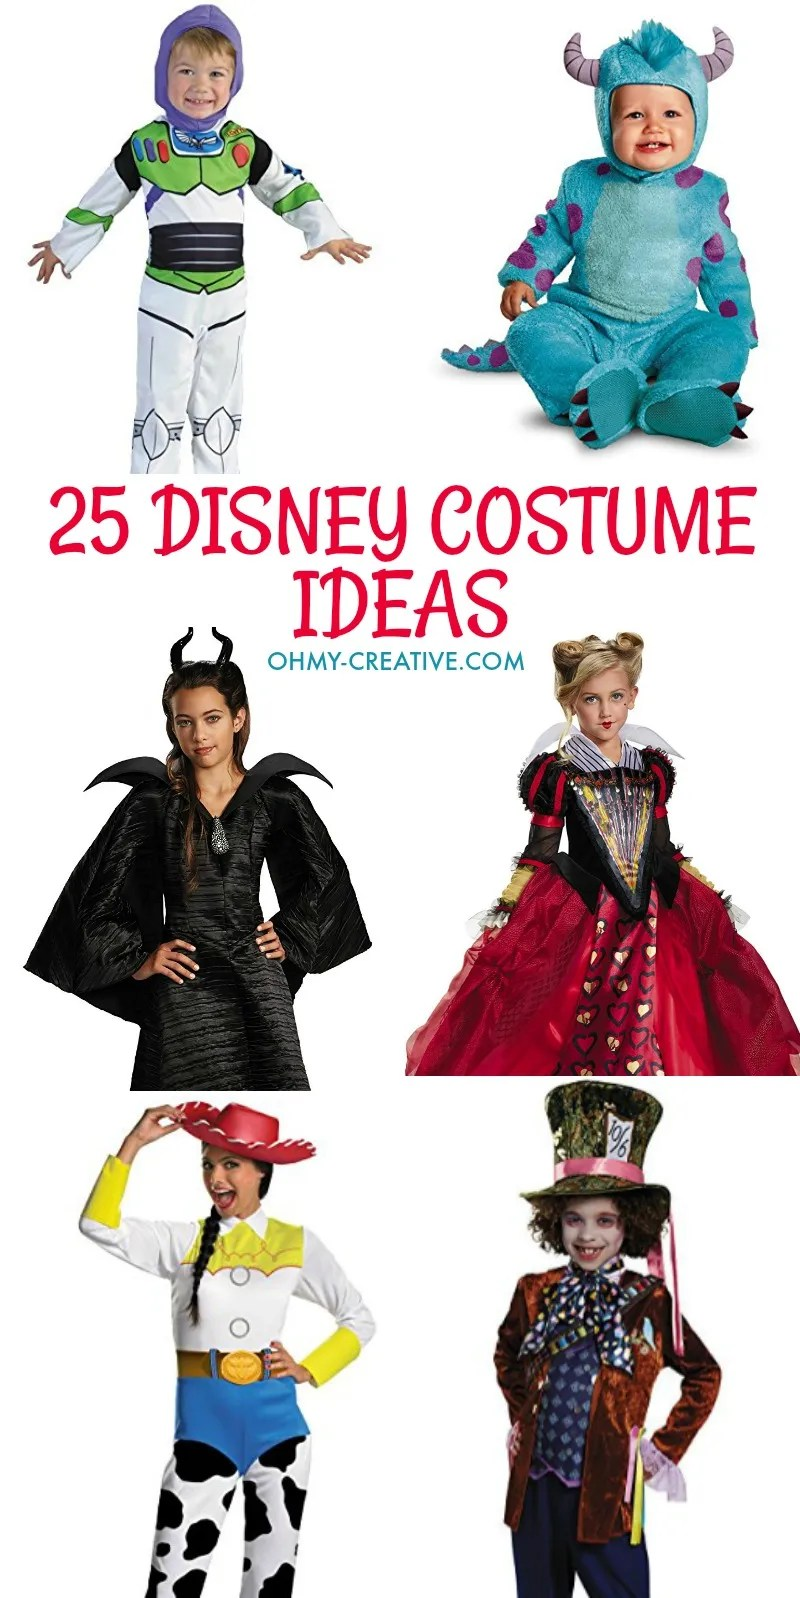 25 Disney Costume Ideas | OHMY-CREATIVE.COM | Disney Halloween Costumes | Disney Kids Costumes | Disney Teen Costumes Disney Adult Costumes | DIY Costumes | DIY Halloween | DIY Halloween Costumes | Amazon Costumes | Best DIY Halloween Costumes | Disney Halloween Costumes